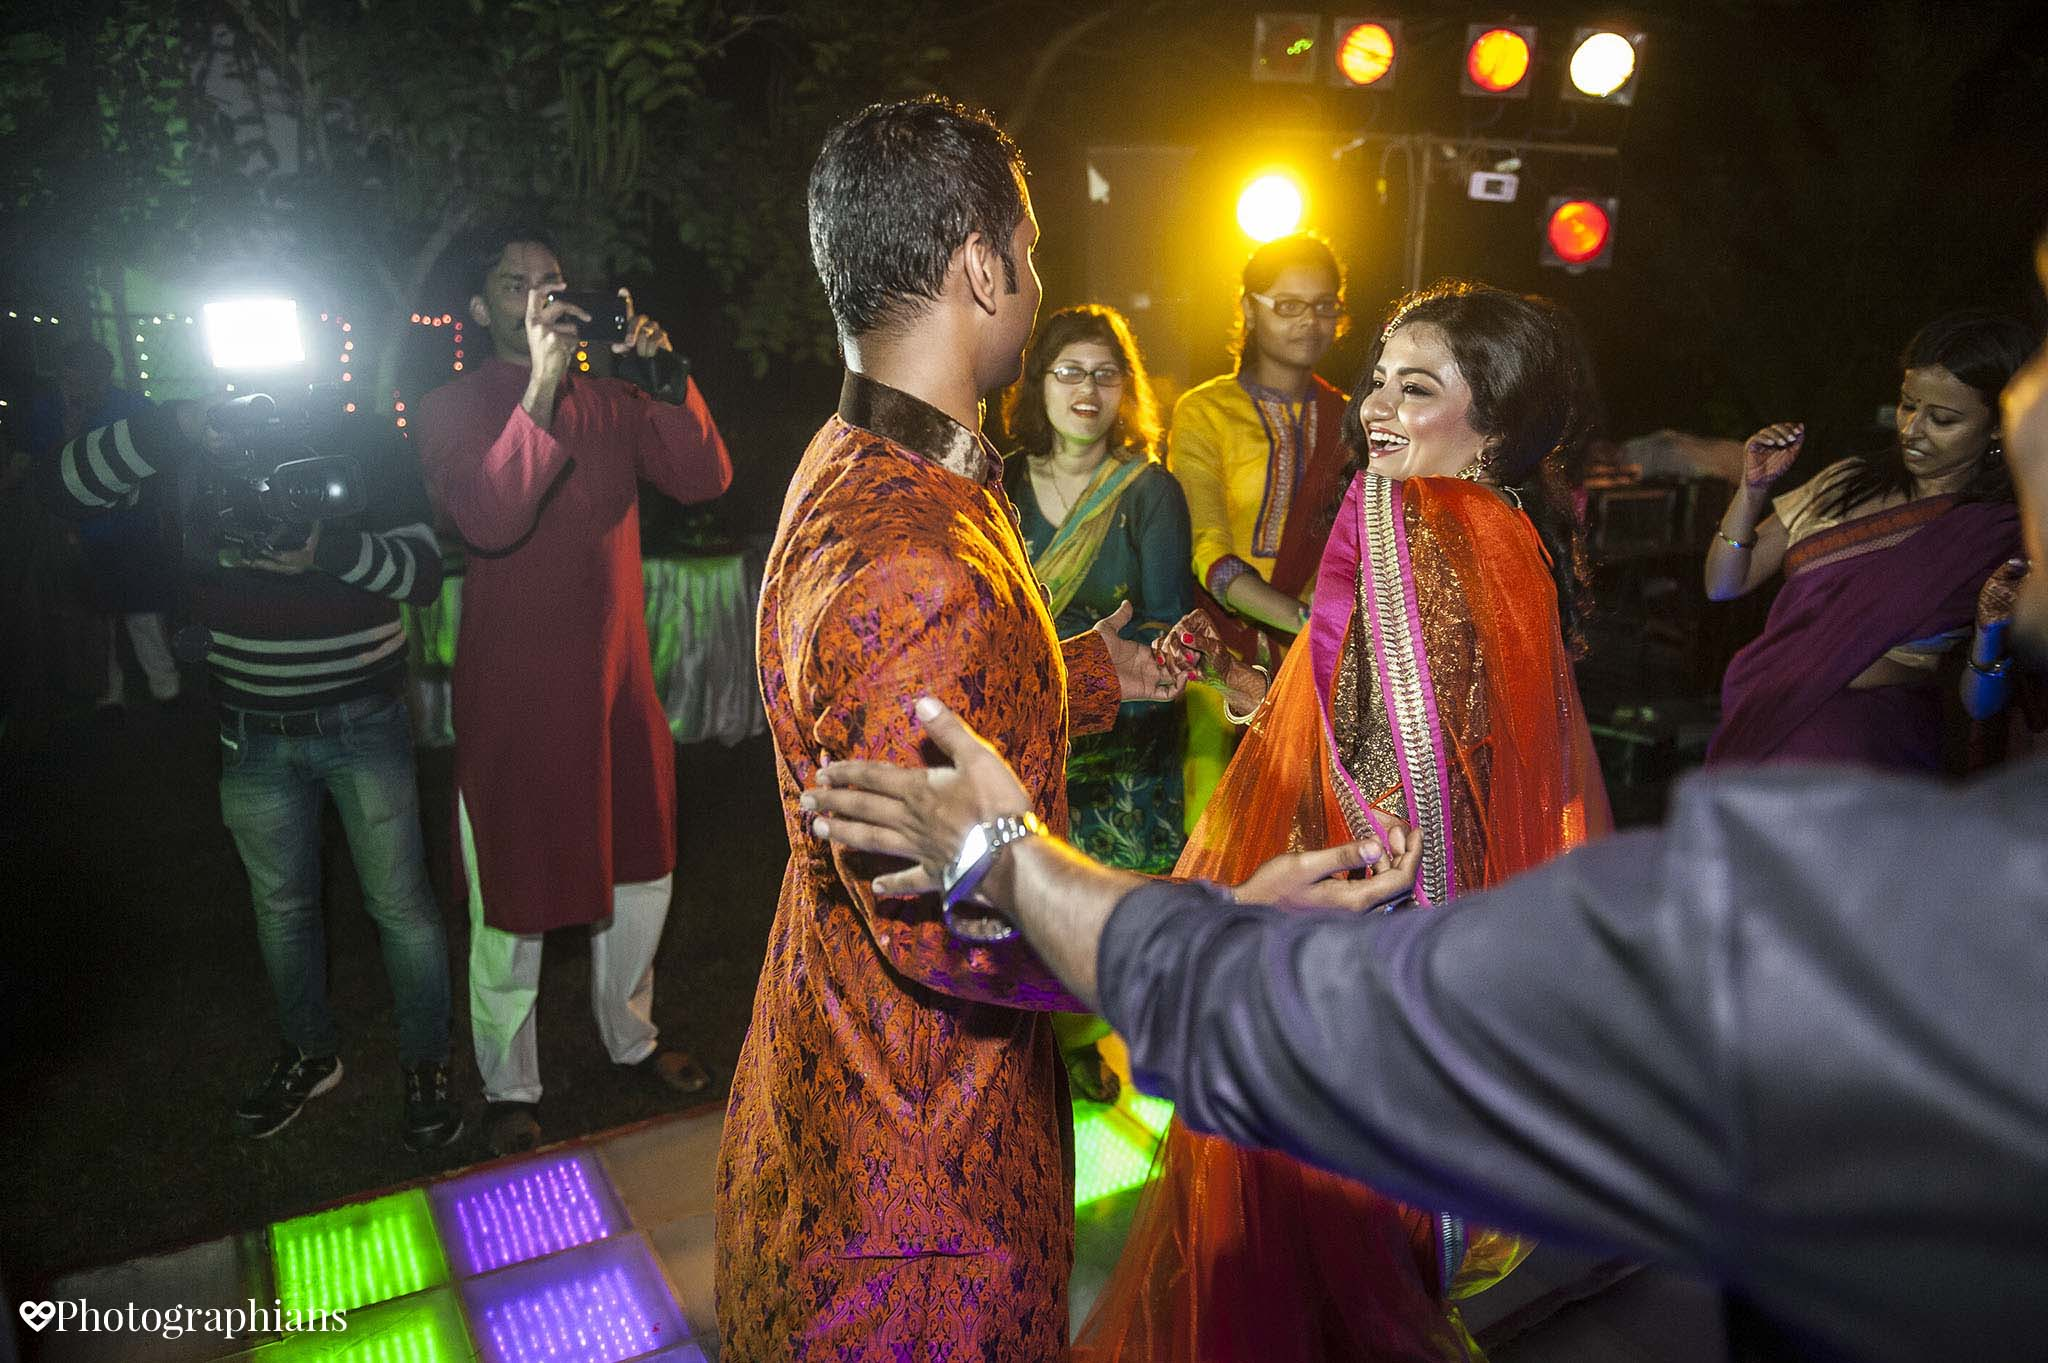 Photographians_Indian_Destination_Wedding_129